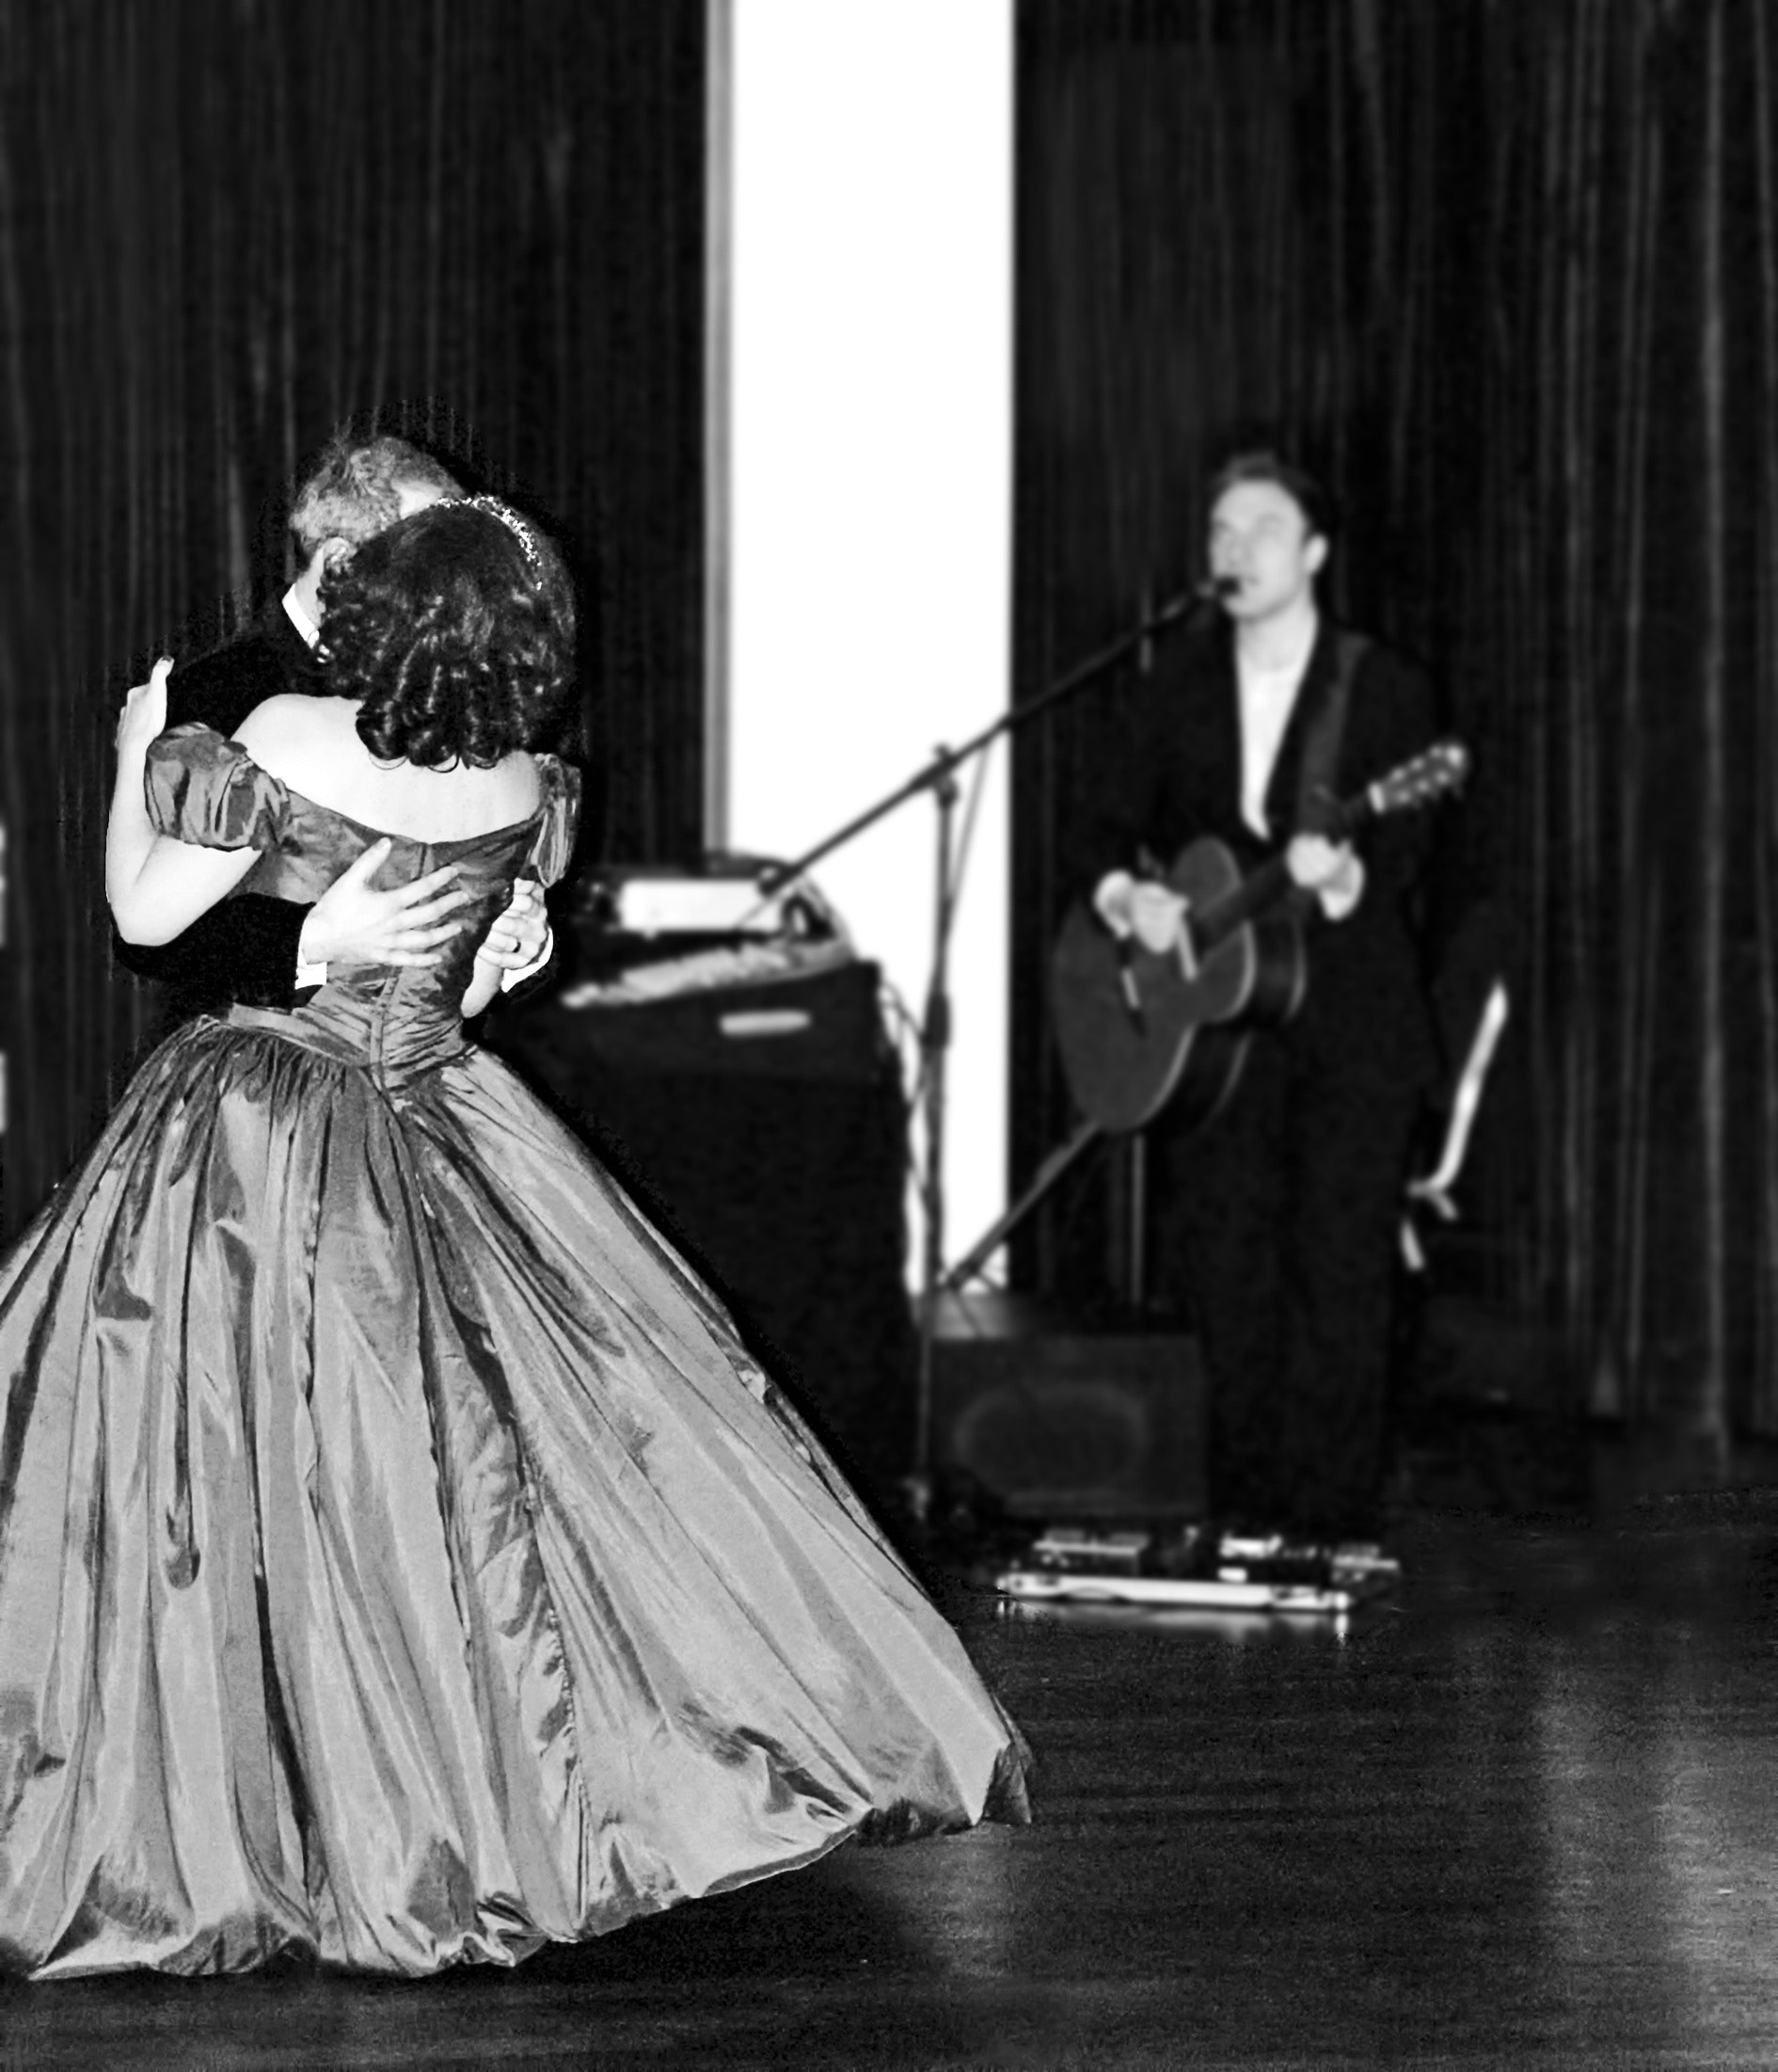 Man and woman dancing in prom apparel near man singing photo